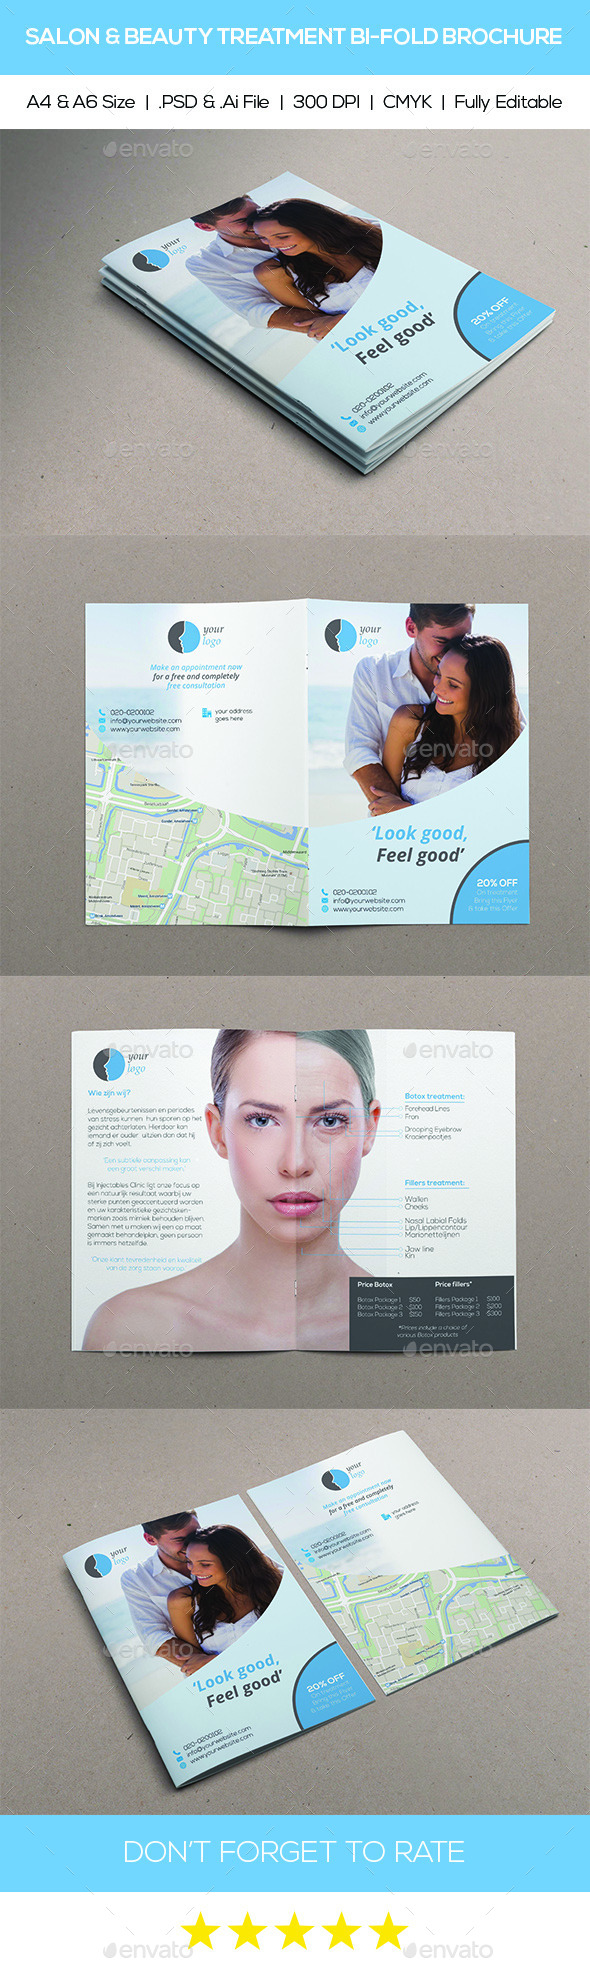 GraphicRiver Salon & Beaty Treatment Bi-Fold Brochure 11256800